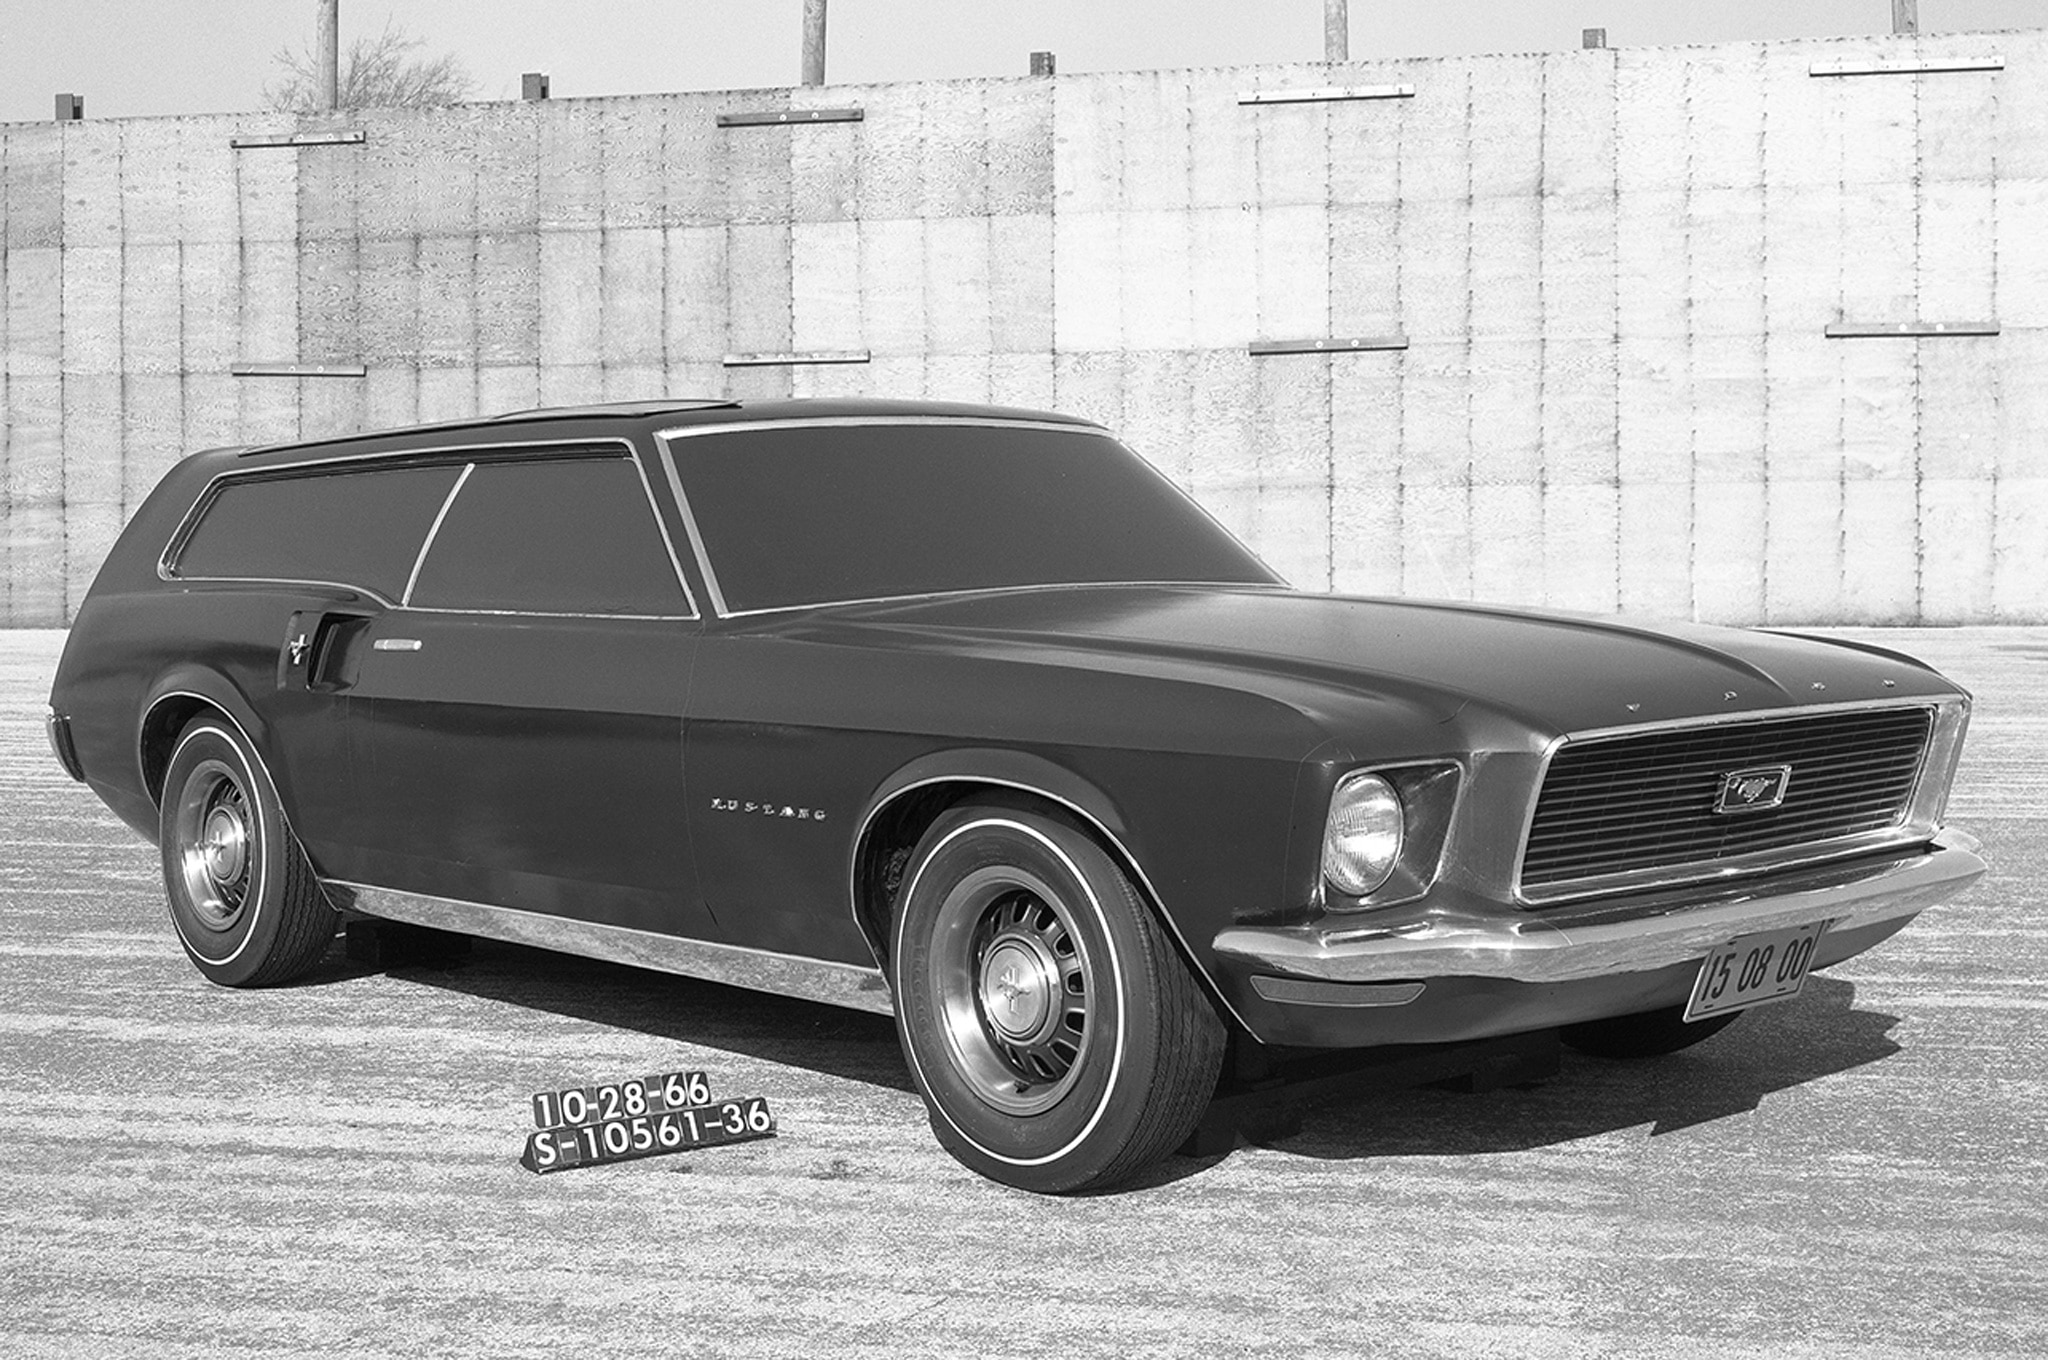 1969 Ford Mustang Station Wagon Design Concept1